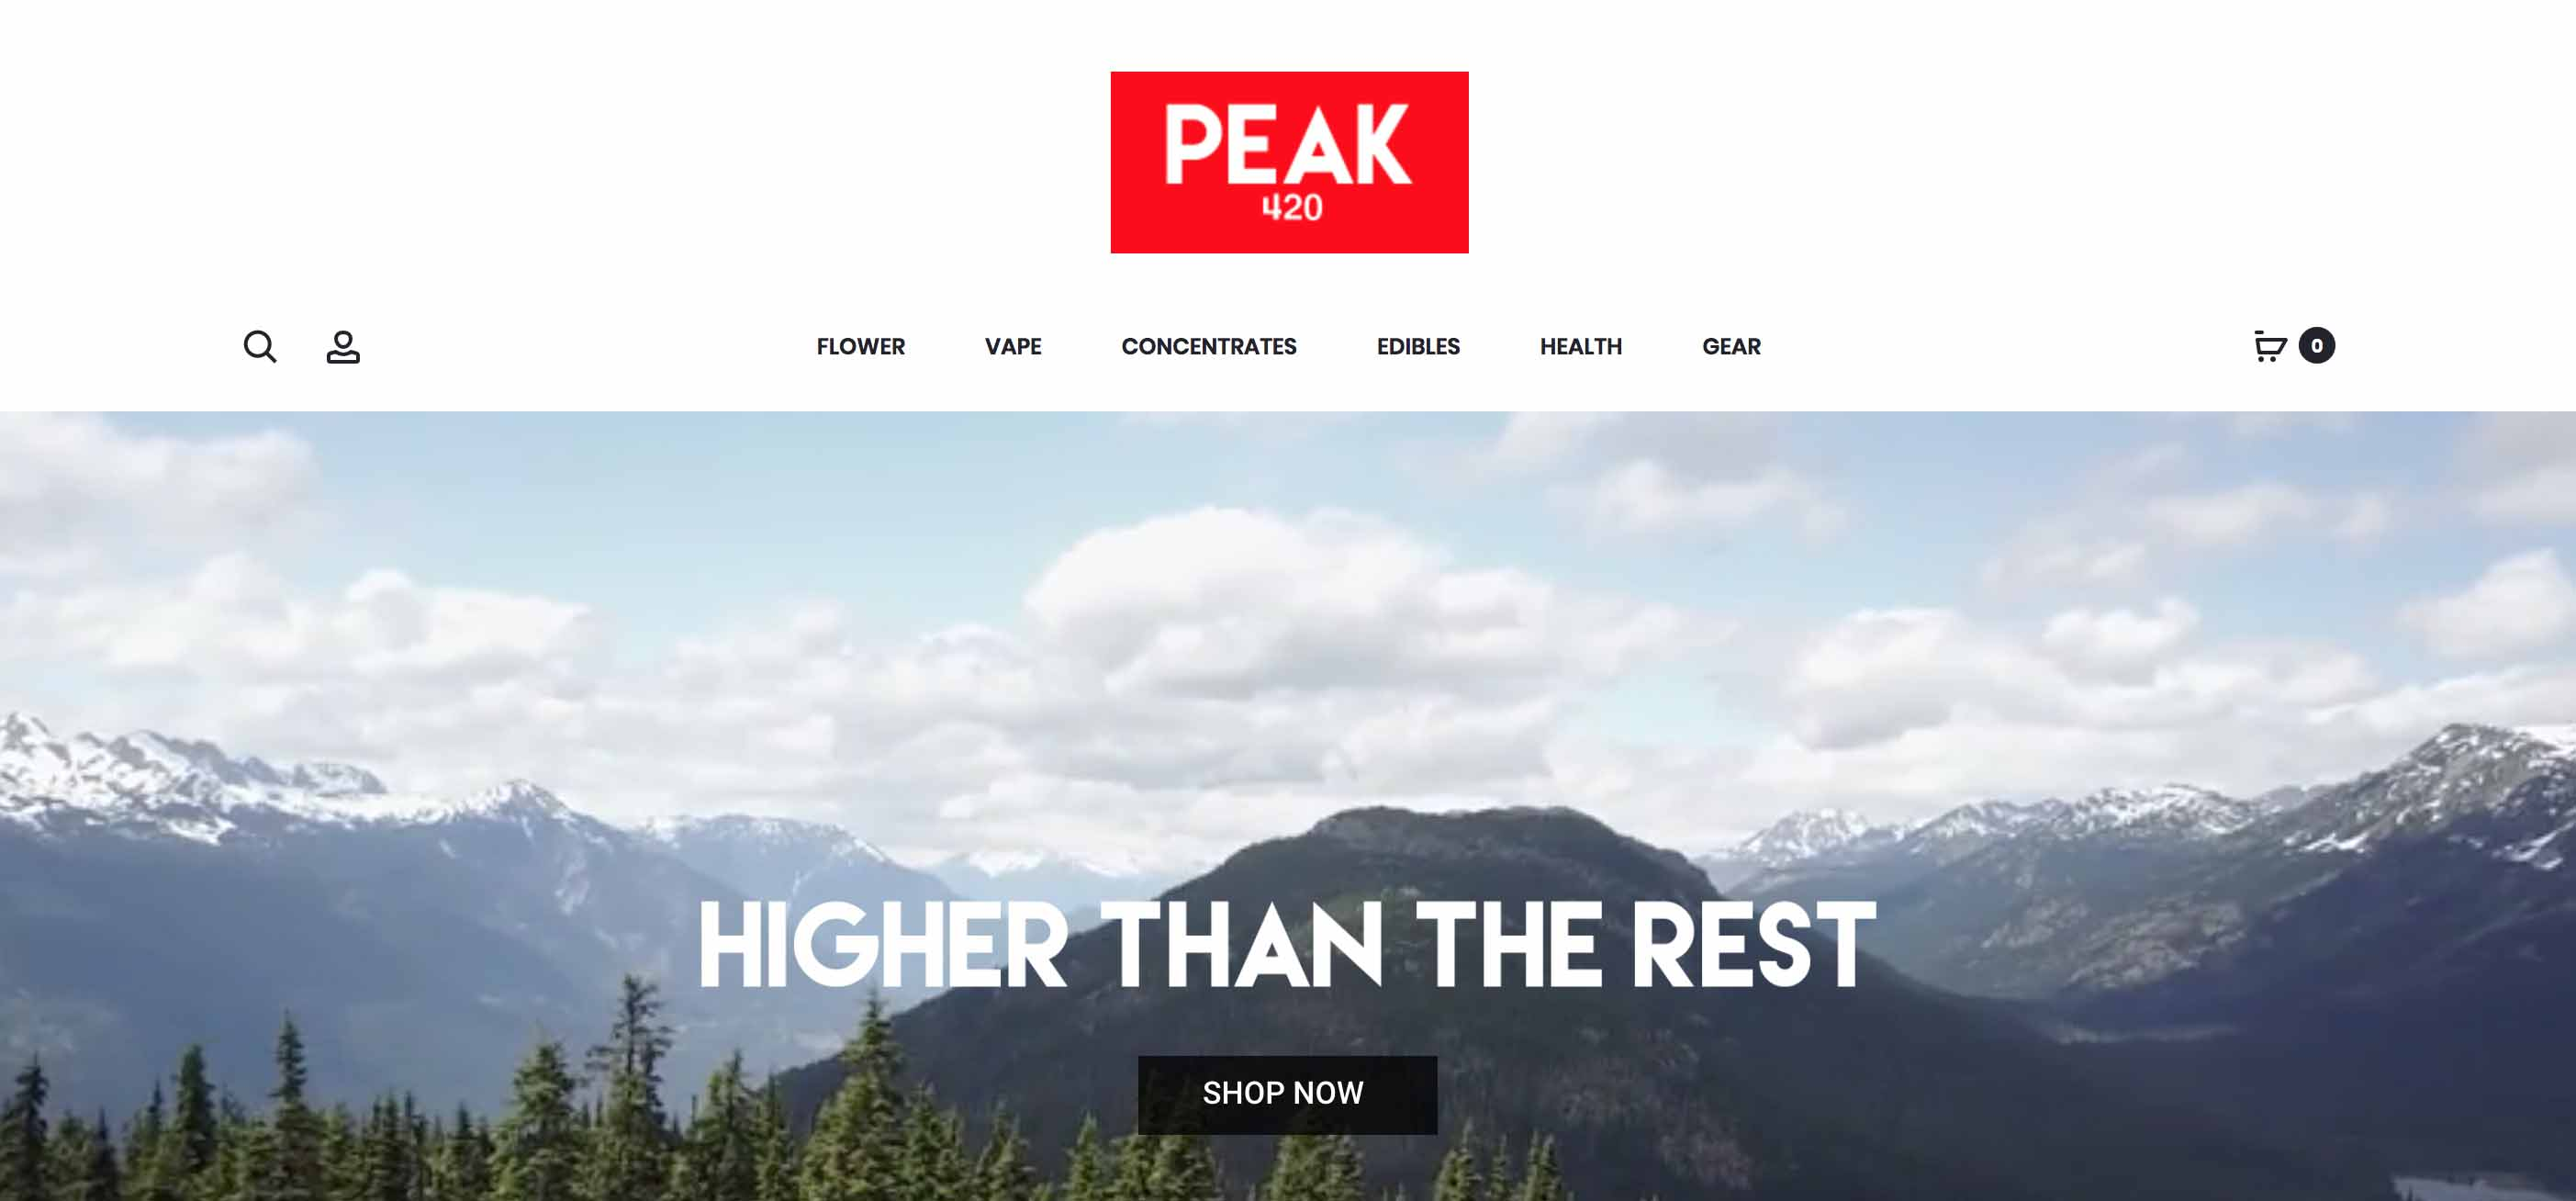 Review of Peak 420 online dispensary